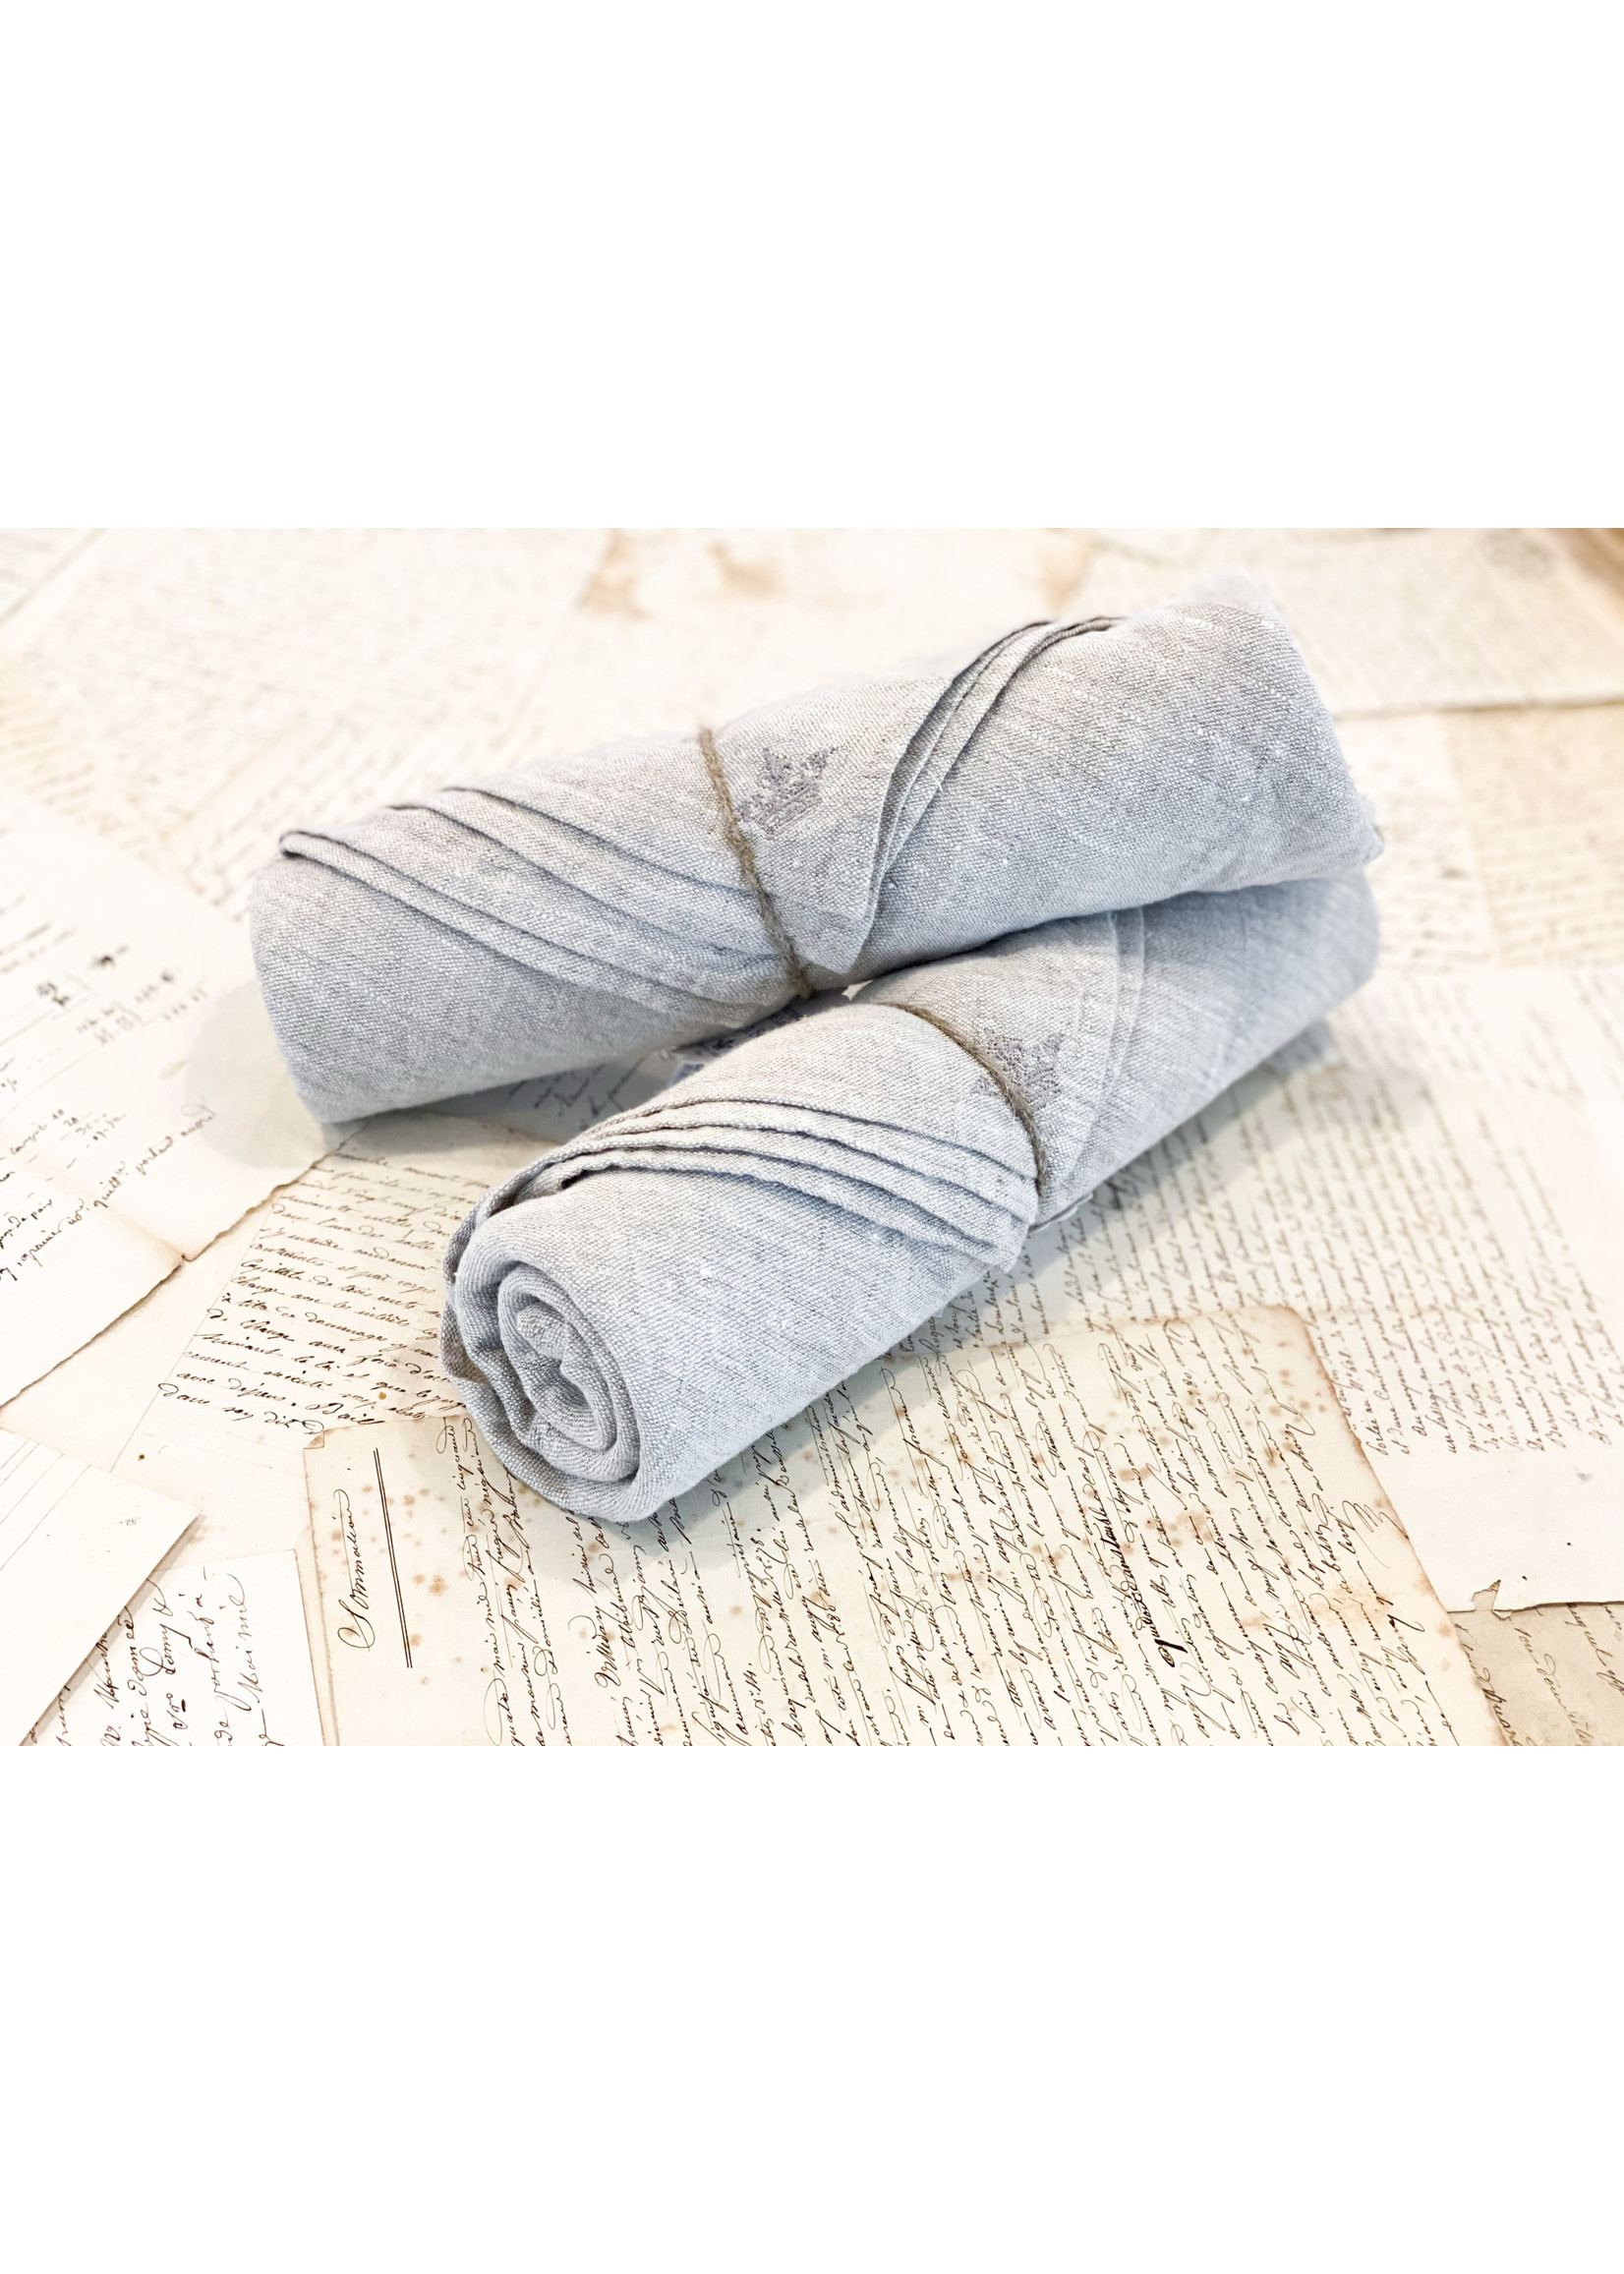 Crown Linen Washed Linen Napkin - Flax (Set of 4)